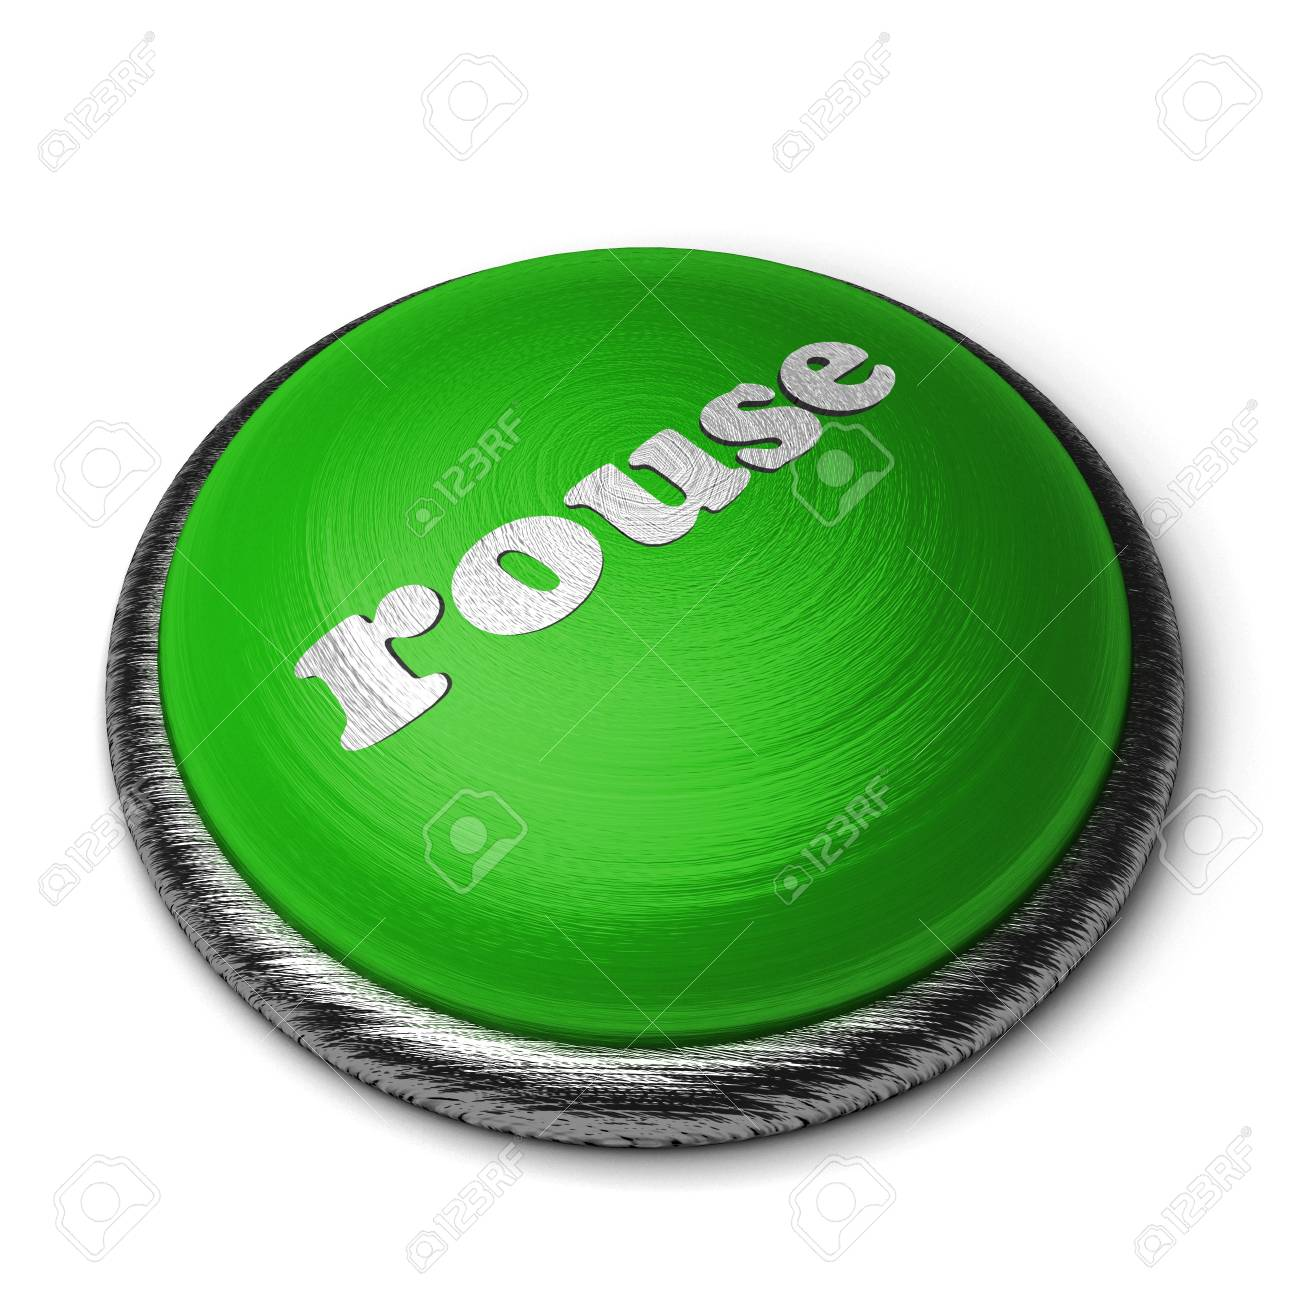 Word on the button Stock Photo - 11821321